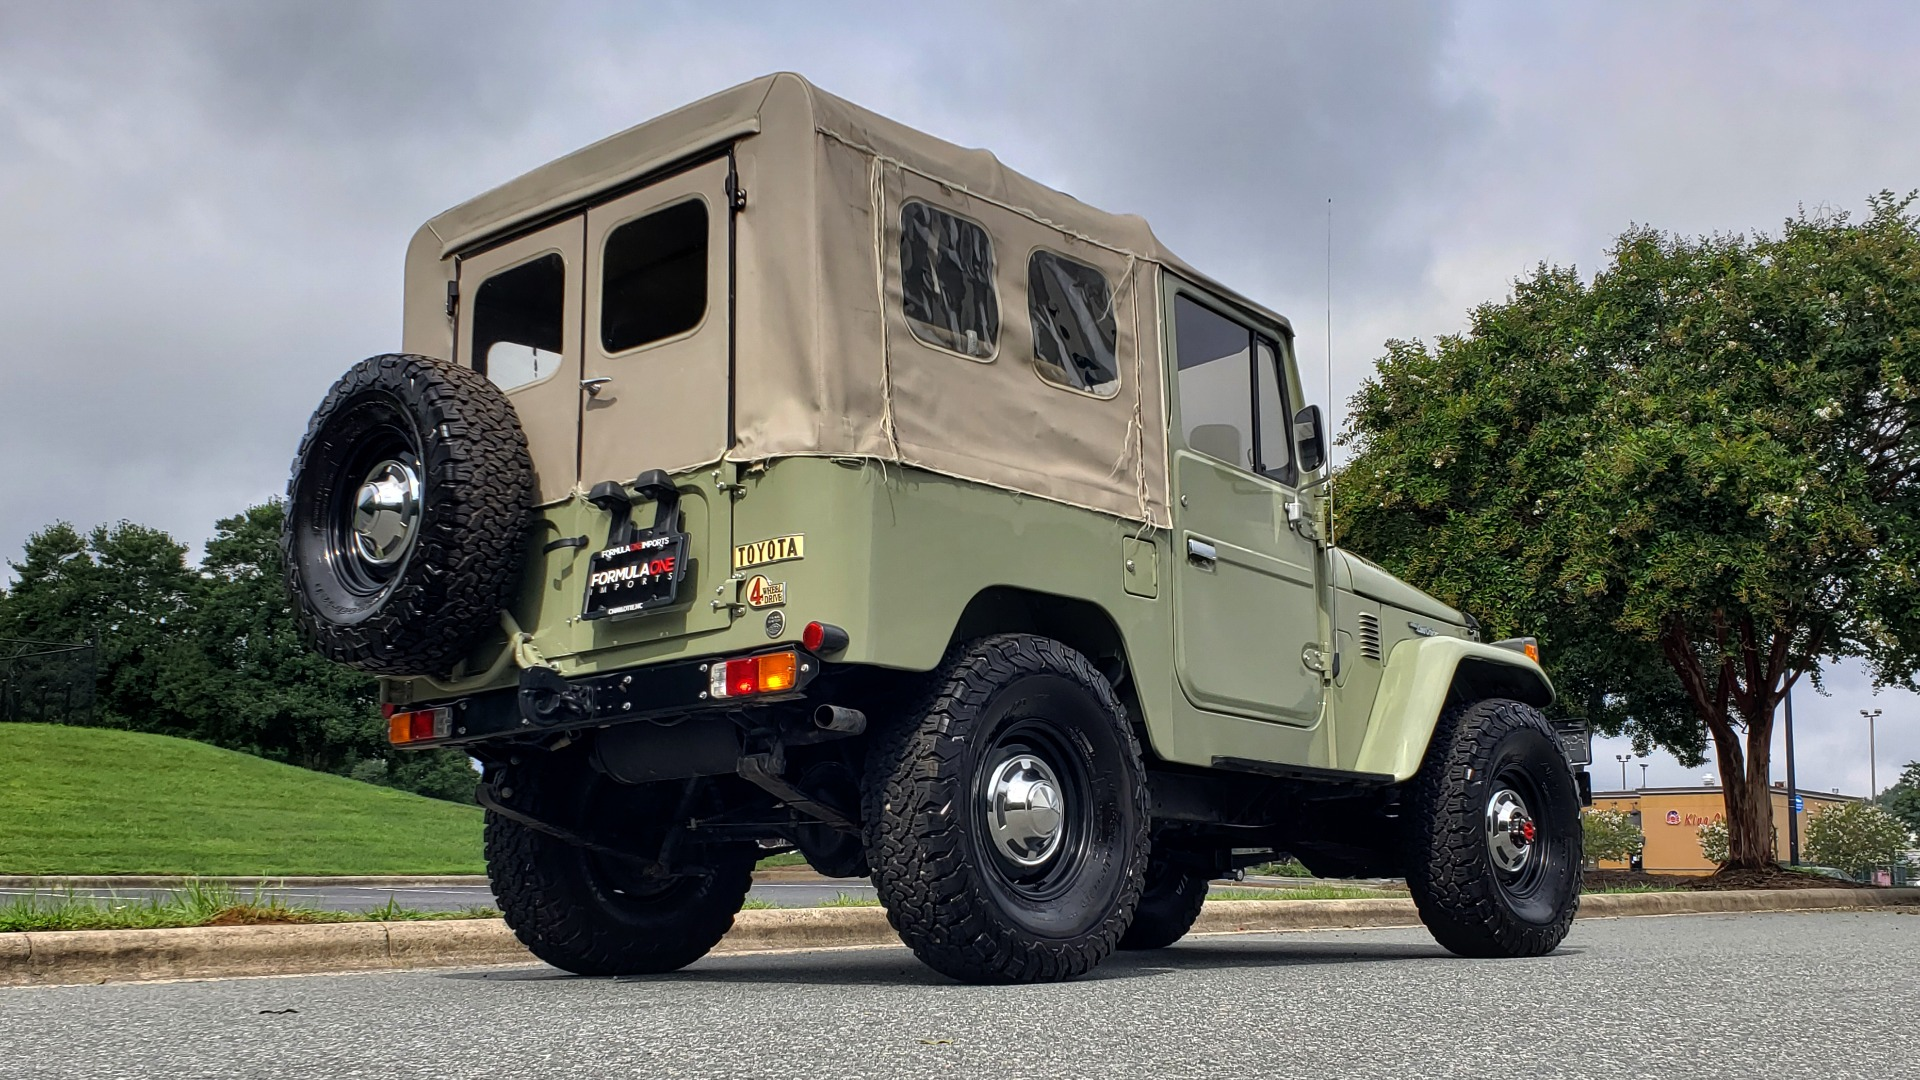 Used 1981 Toyota FJ40 LAND CRUISER FULL RESTORATION - 6500KM SINCE COMPLETE for sale $40,995 at Formula Imports in Charlotte NC 28227 6